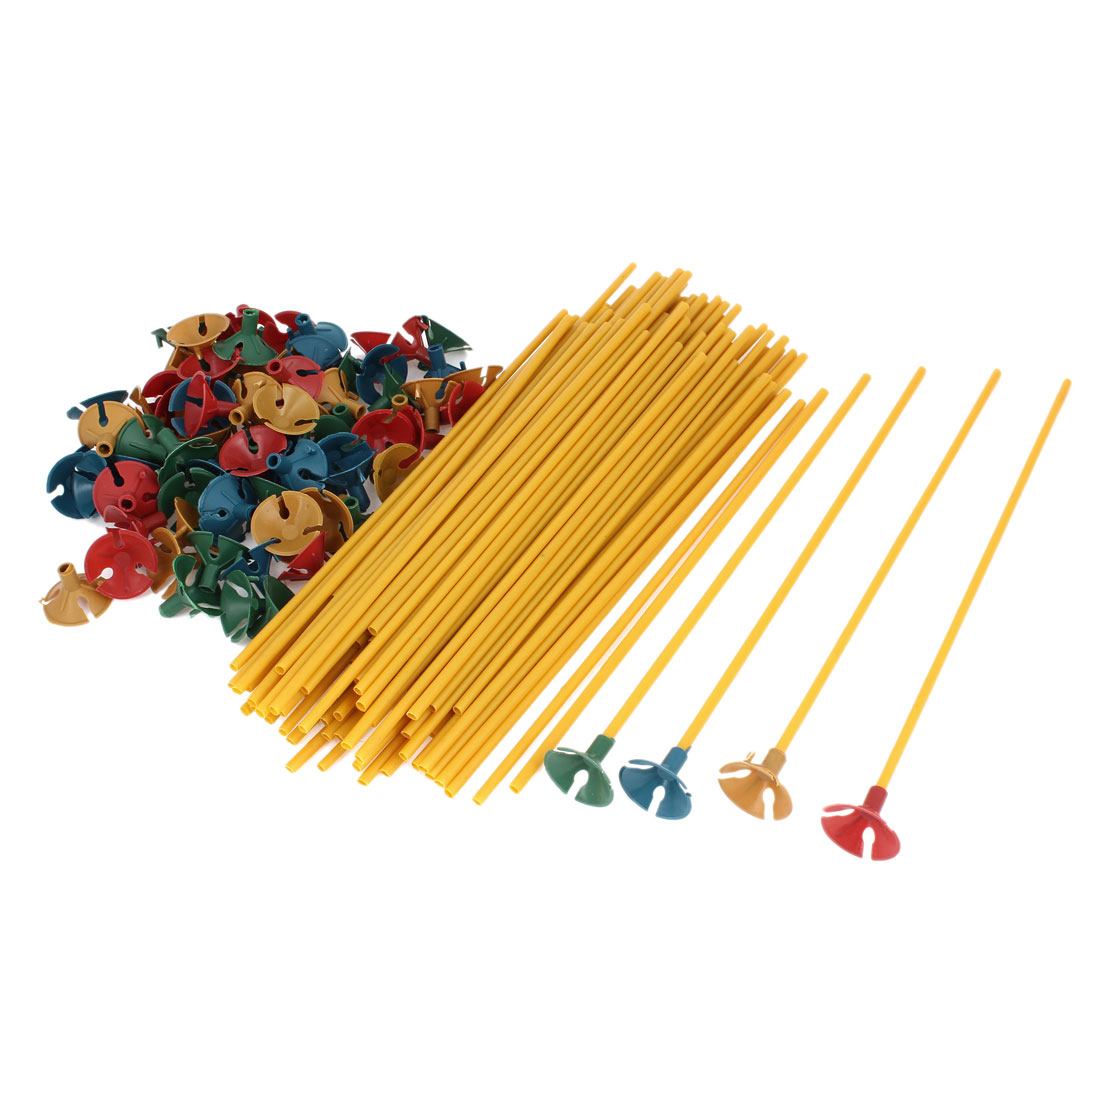 100 Pcs Party Decoration Yellow Plastic Balloon Sticks w Assorted Color Cups